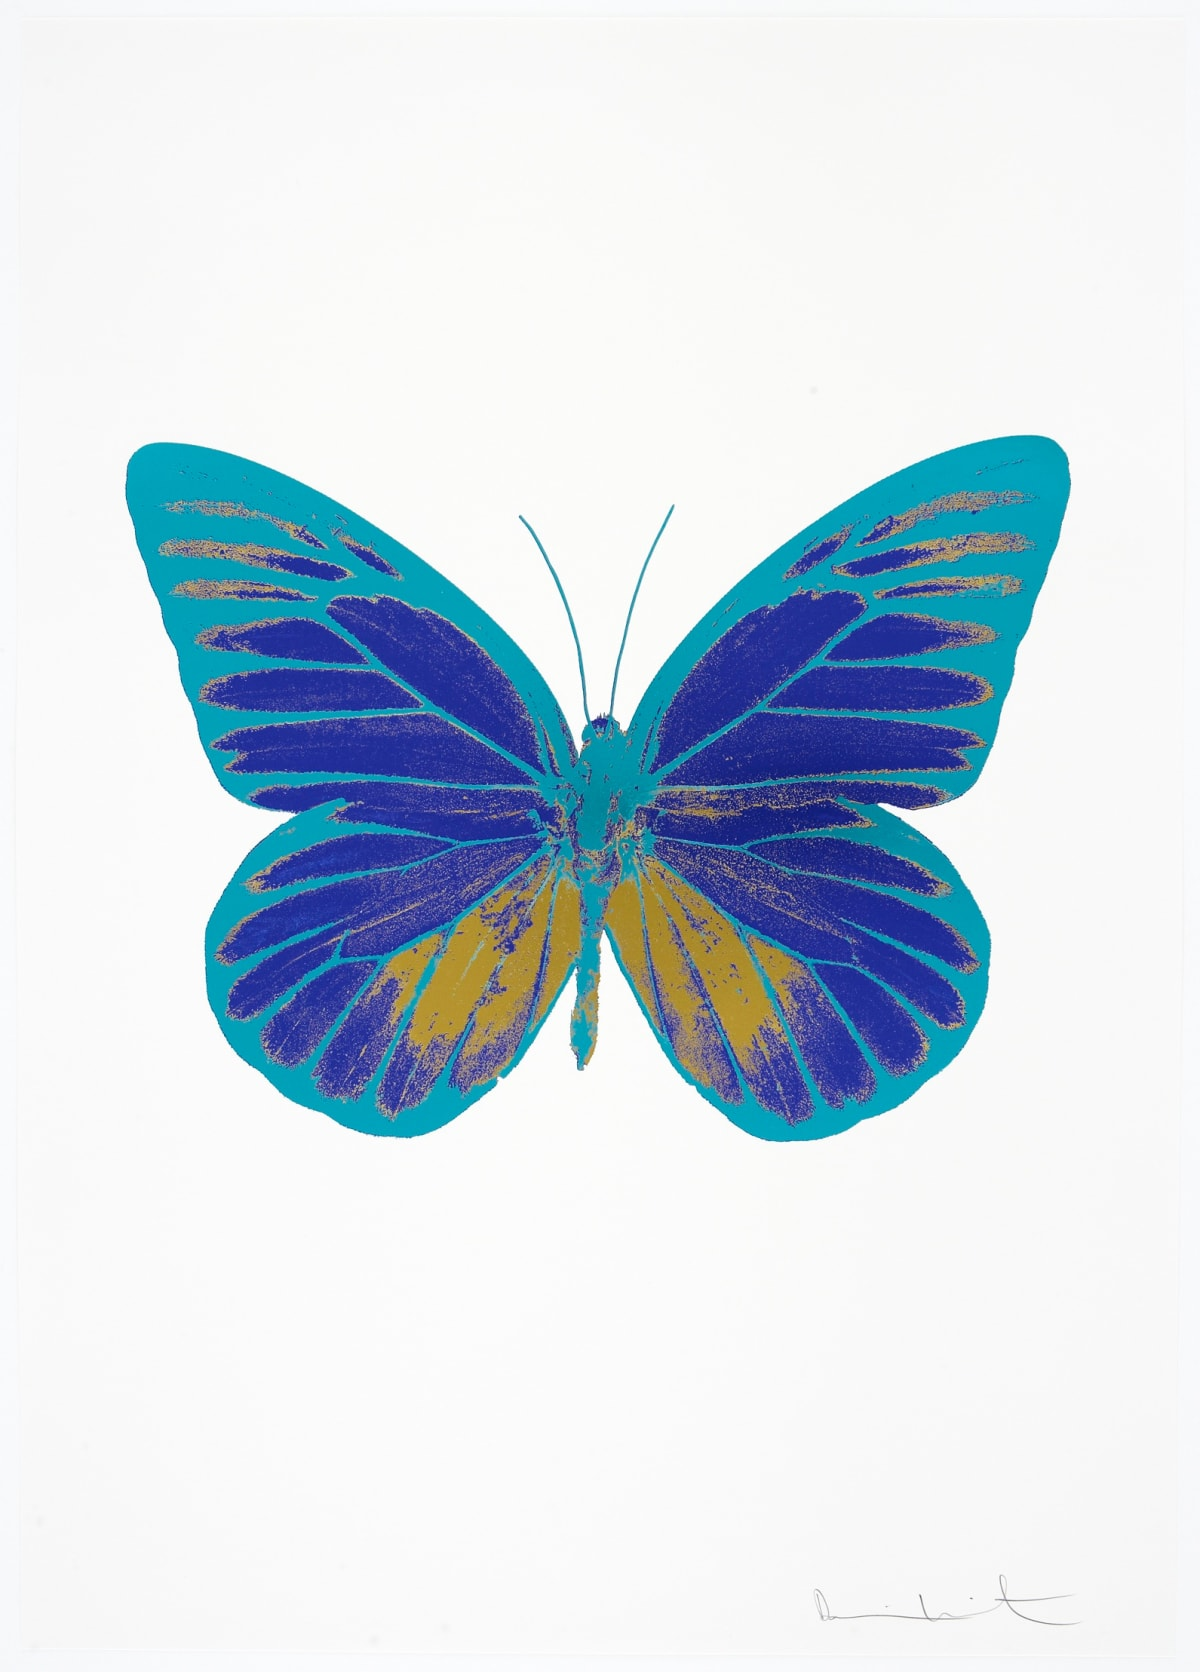 Damien Hirst The Souls I - Westminster Blue/Oriental Gold/Topaz, 2010 3 colour foil block on 300gsm Arches 88 archival paper. Signed and numbered. Published by Paul Stolper and Other Criteria 72 x 51cm OC7765 / 659-28 Edition of 15